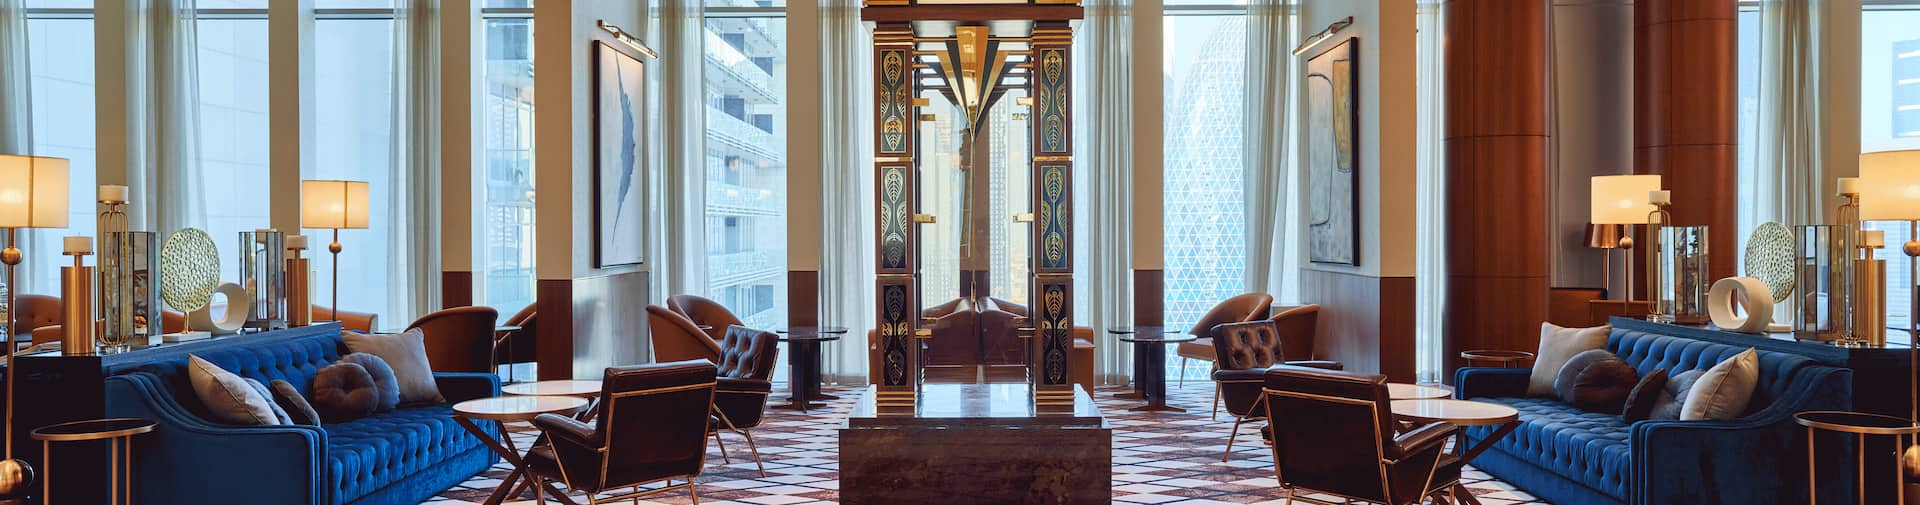 Waldorf Astoria Hotels and Resorts - Luxury Hotels